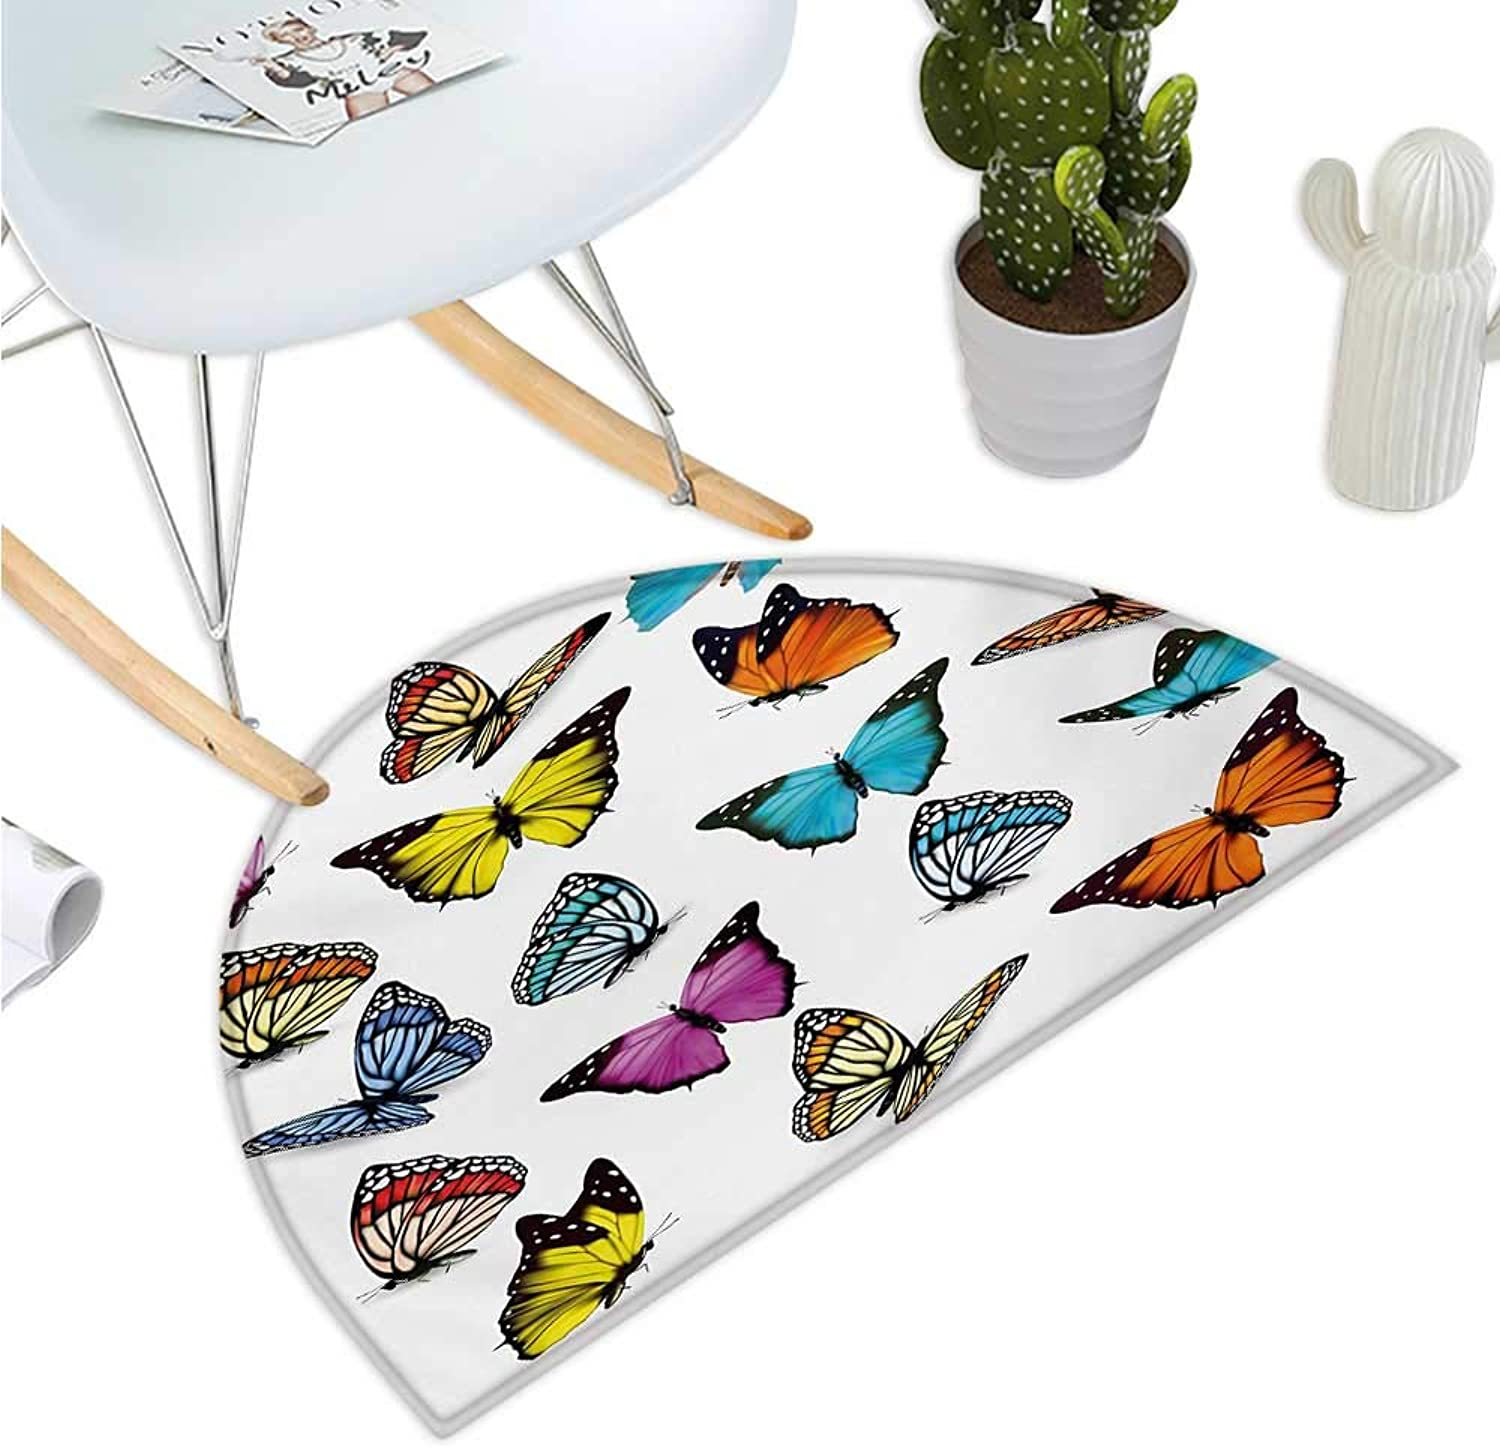 Animal Semicircular Cushion Big Collection of colorful Butterflies Flying Artistic Composition Summertime Print Bathroom Mat H 43.3  xD 64.9  Multicolor